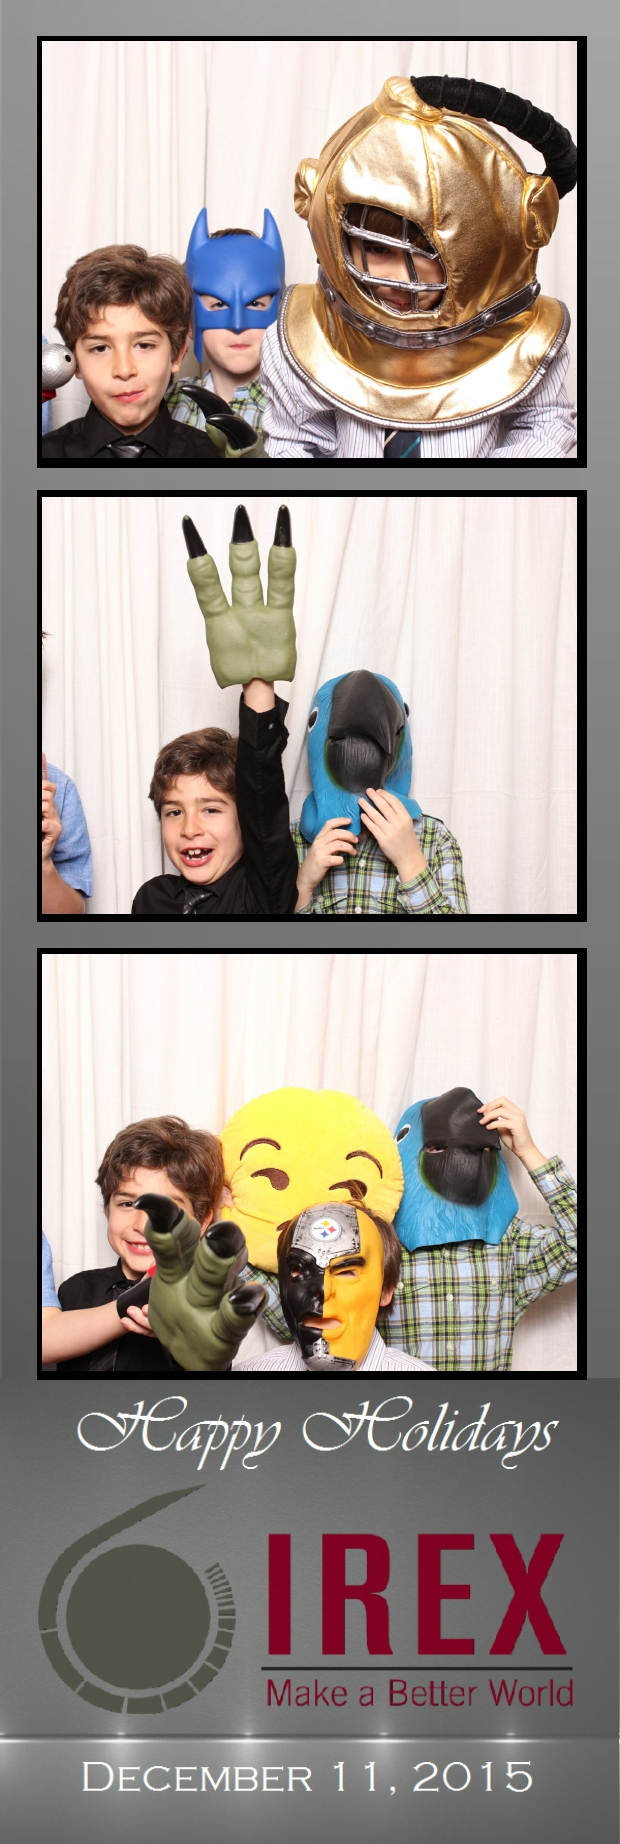 Guest House Events Photo Booth Strips IREX (11).jpg